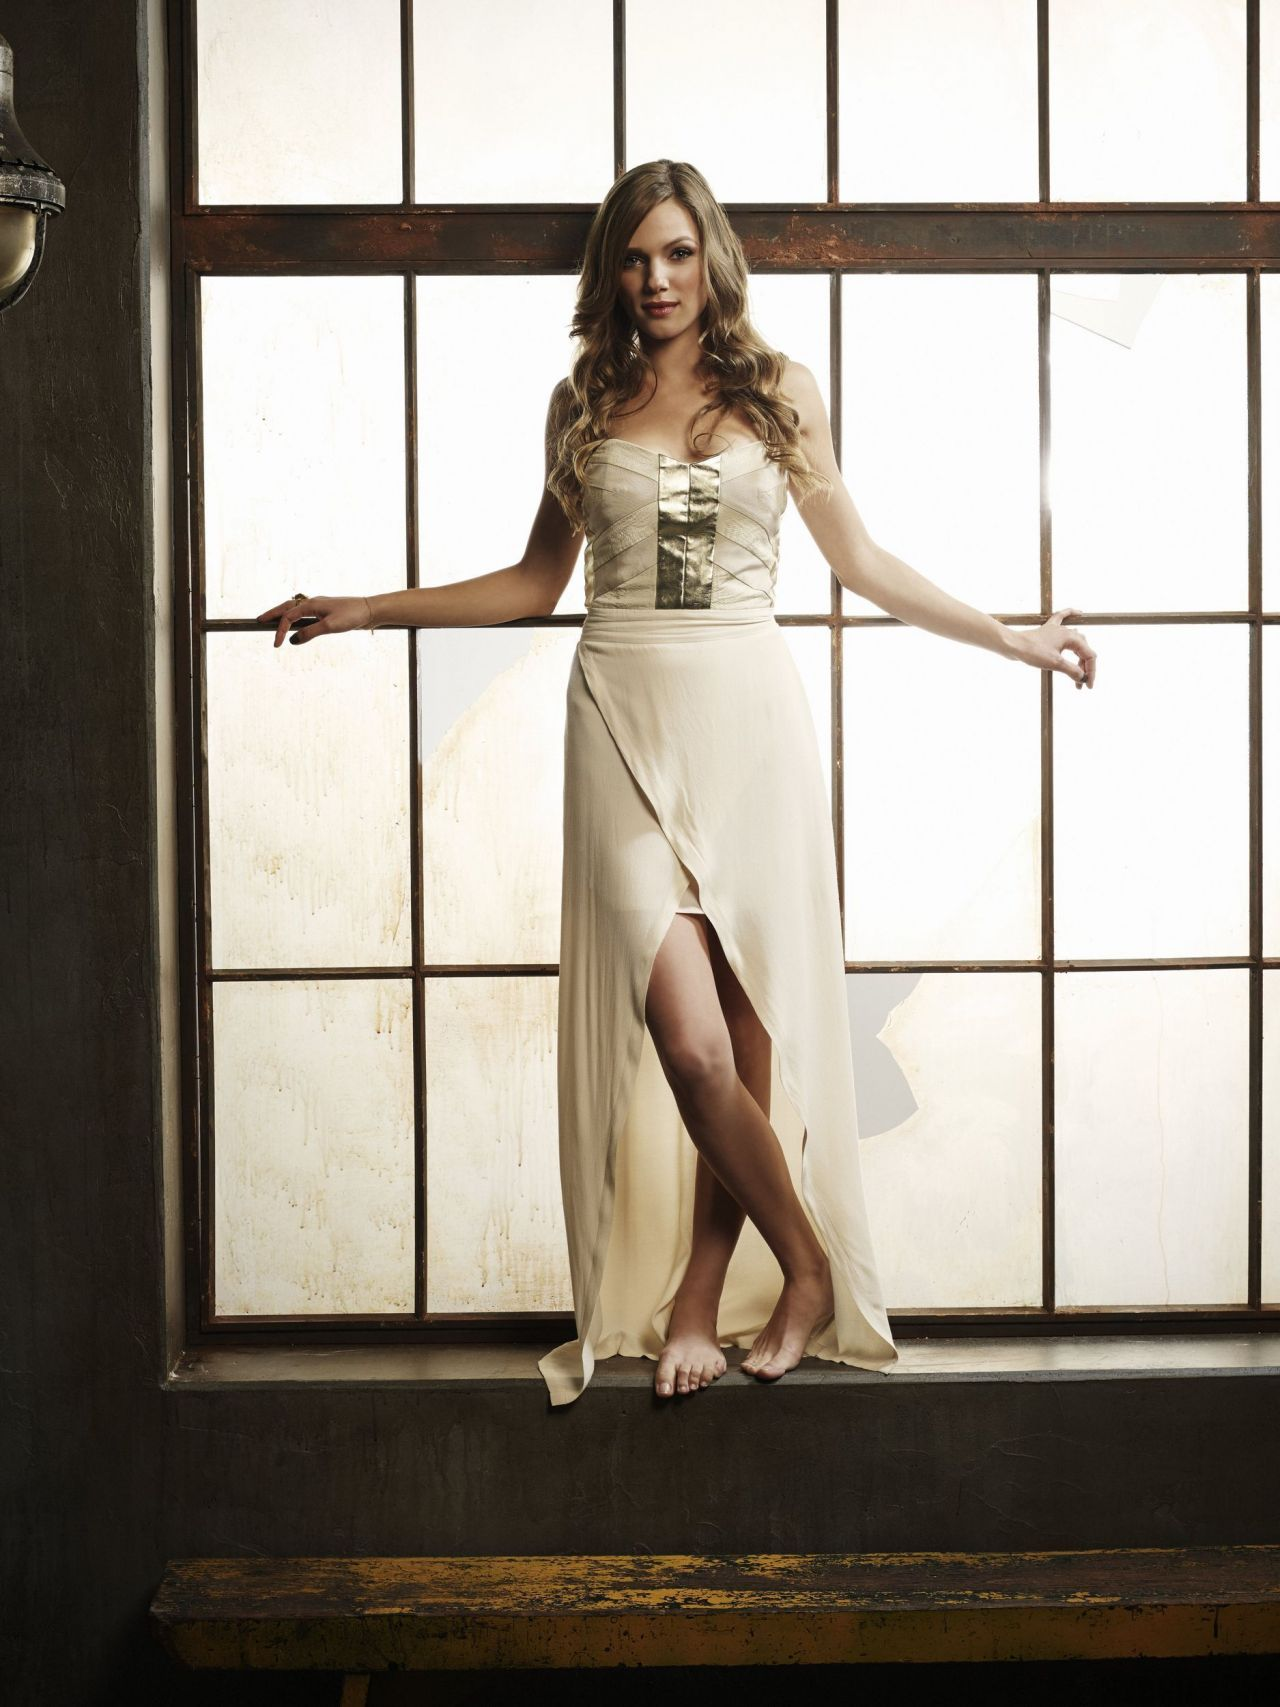 Tracy Spiridakos Revolution Season 2 Photoshoot